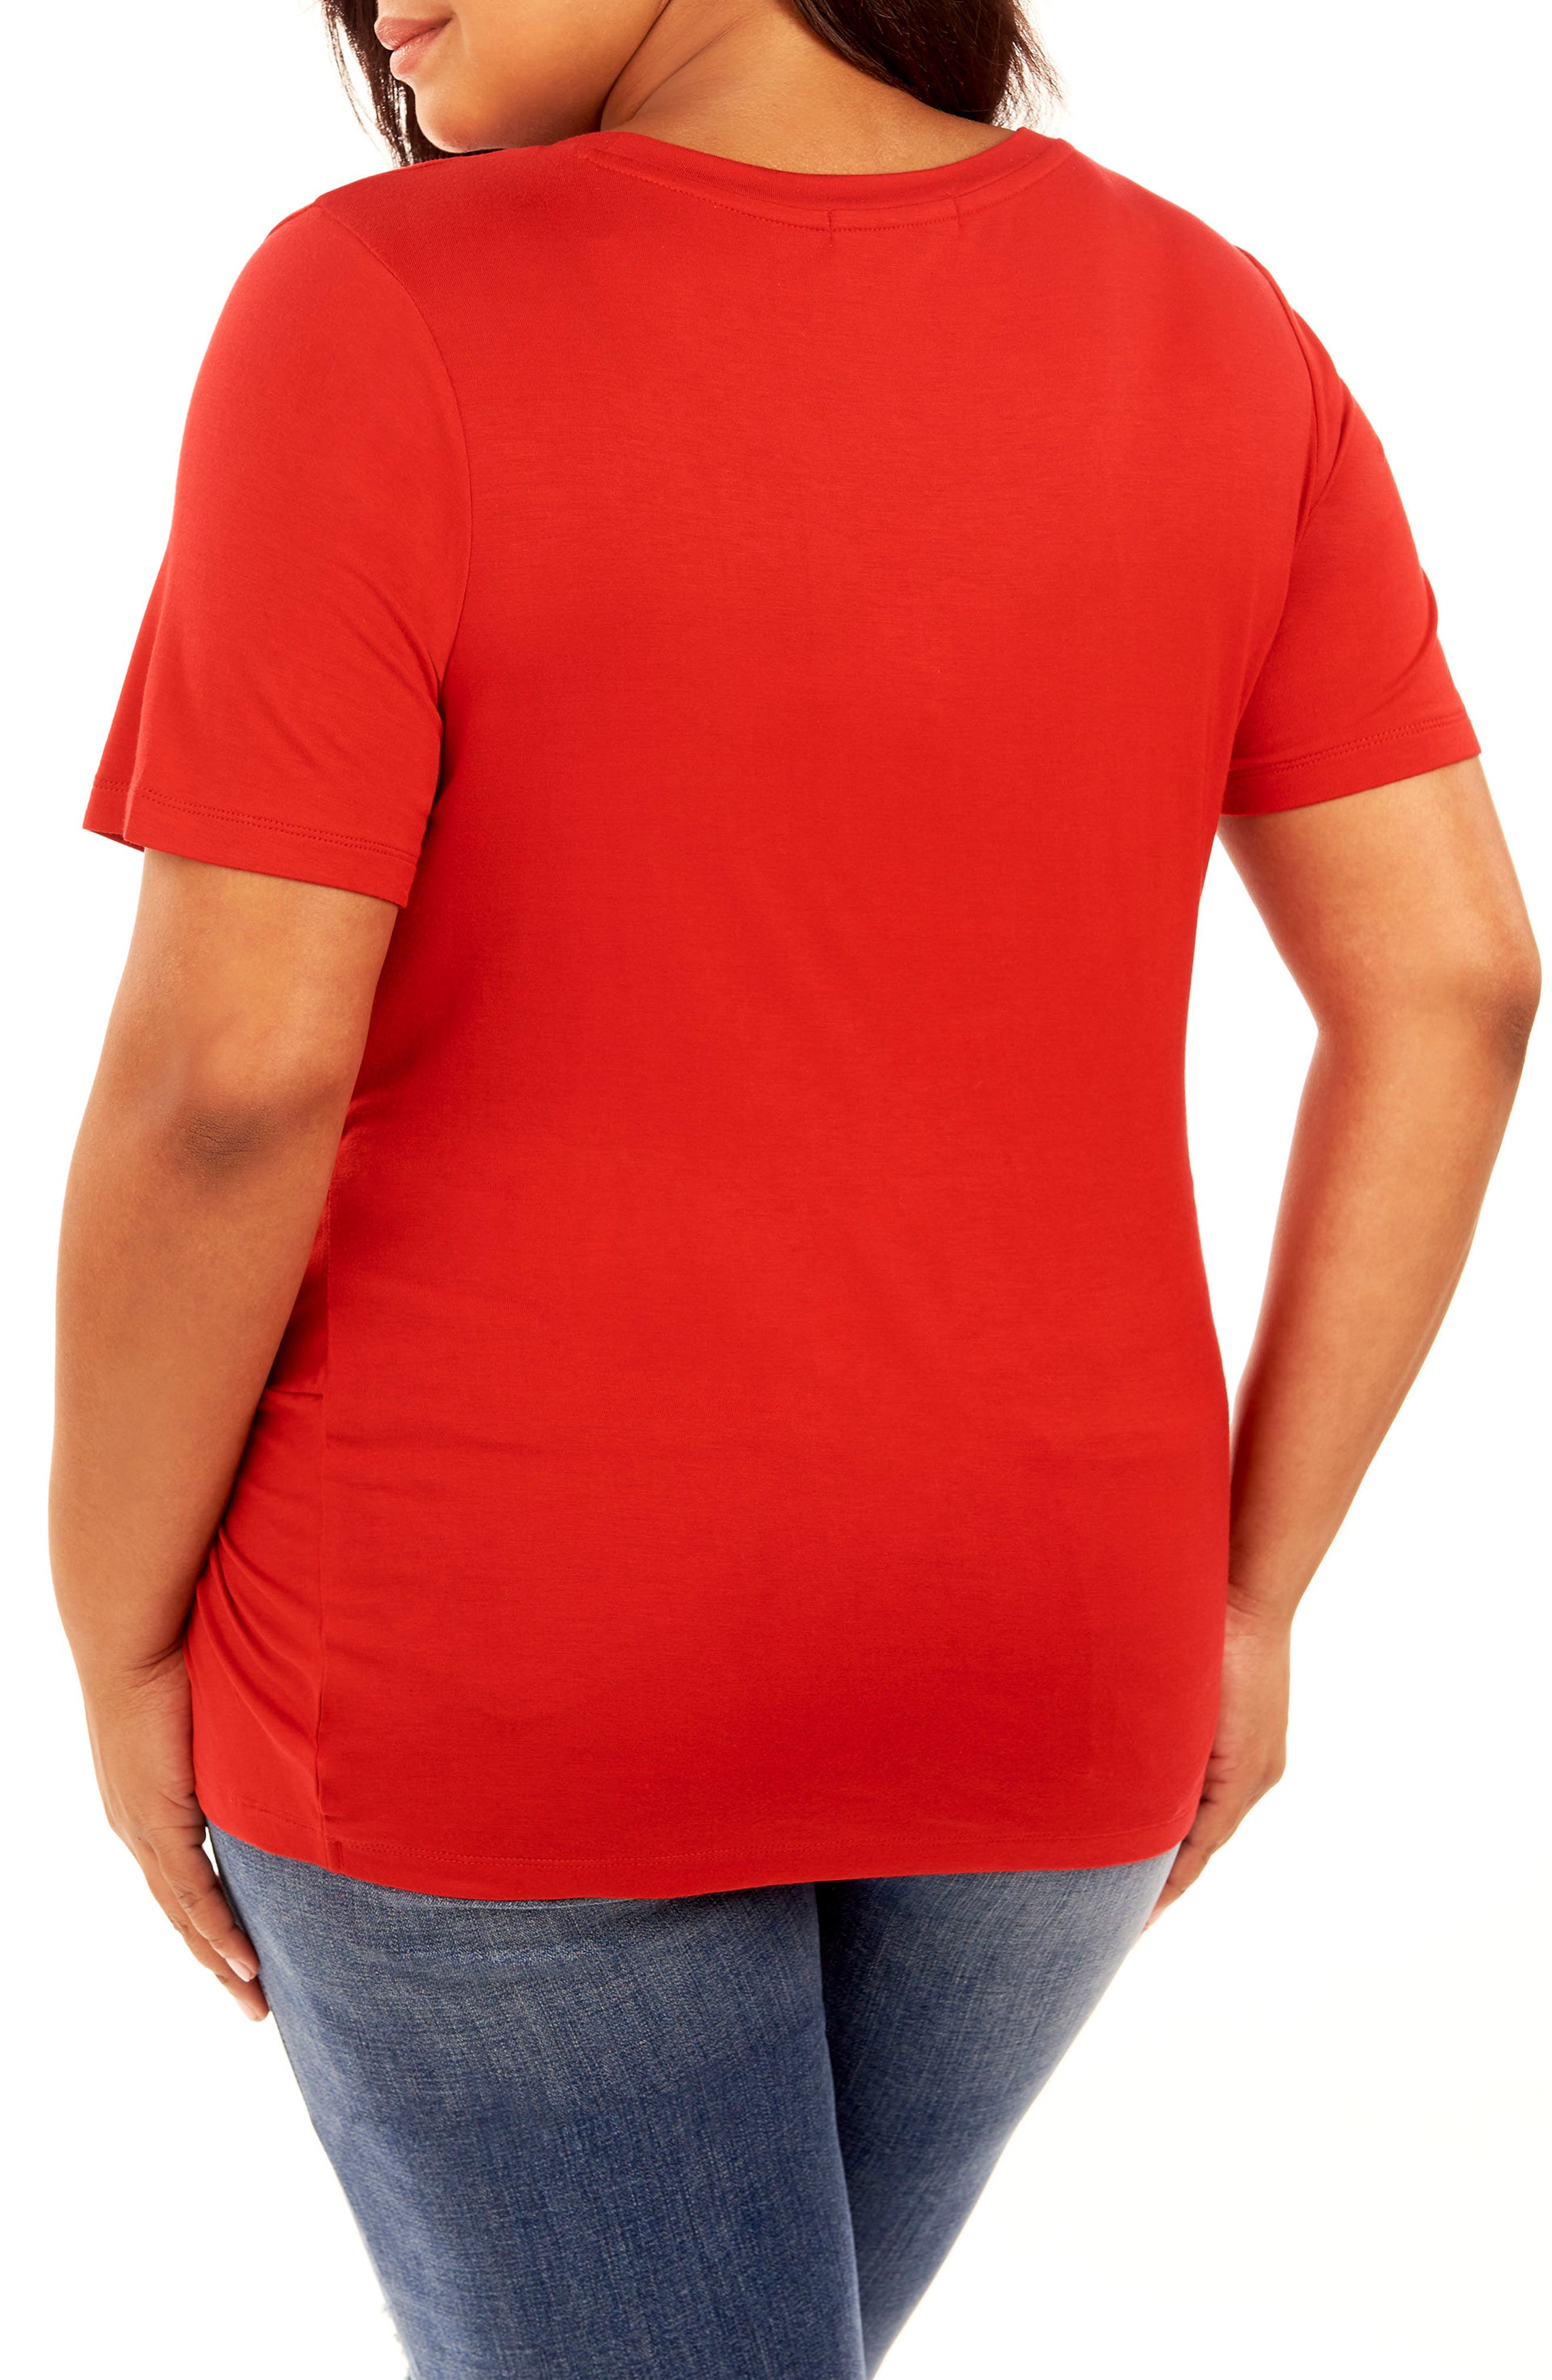 Alternate Image 2  - Rebel Wilson x Angels Ruched Top (Plus Size)